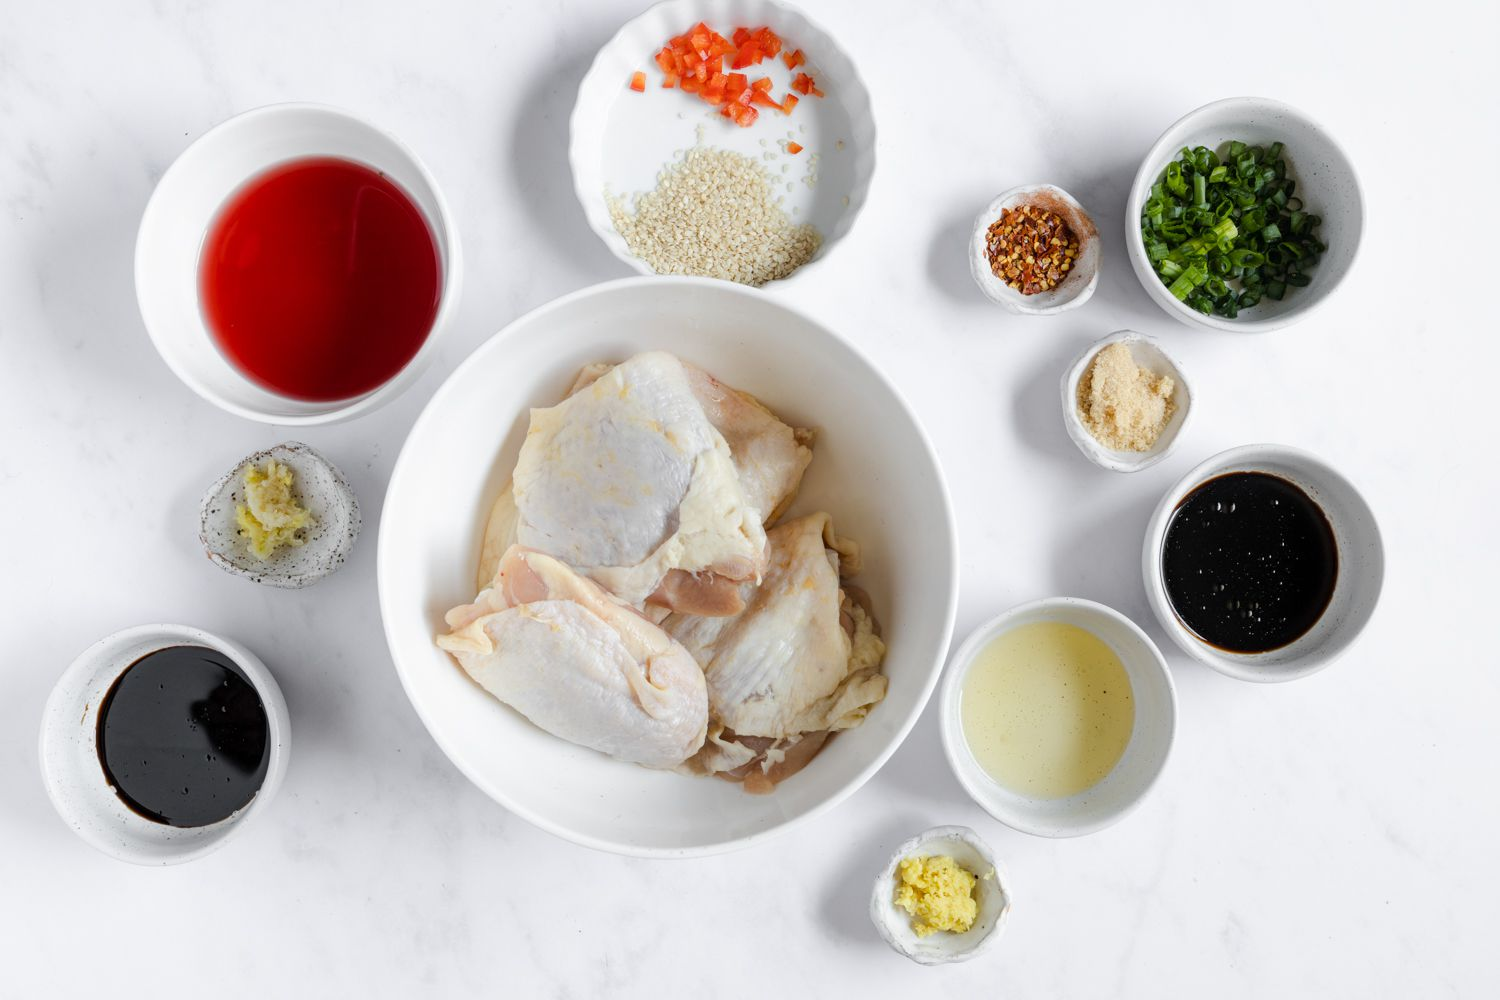 Marinated Ginger Chicken for the Grill ingredients